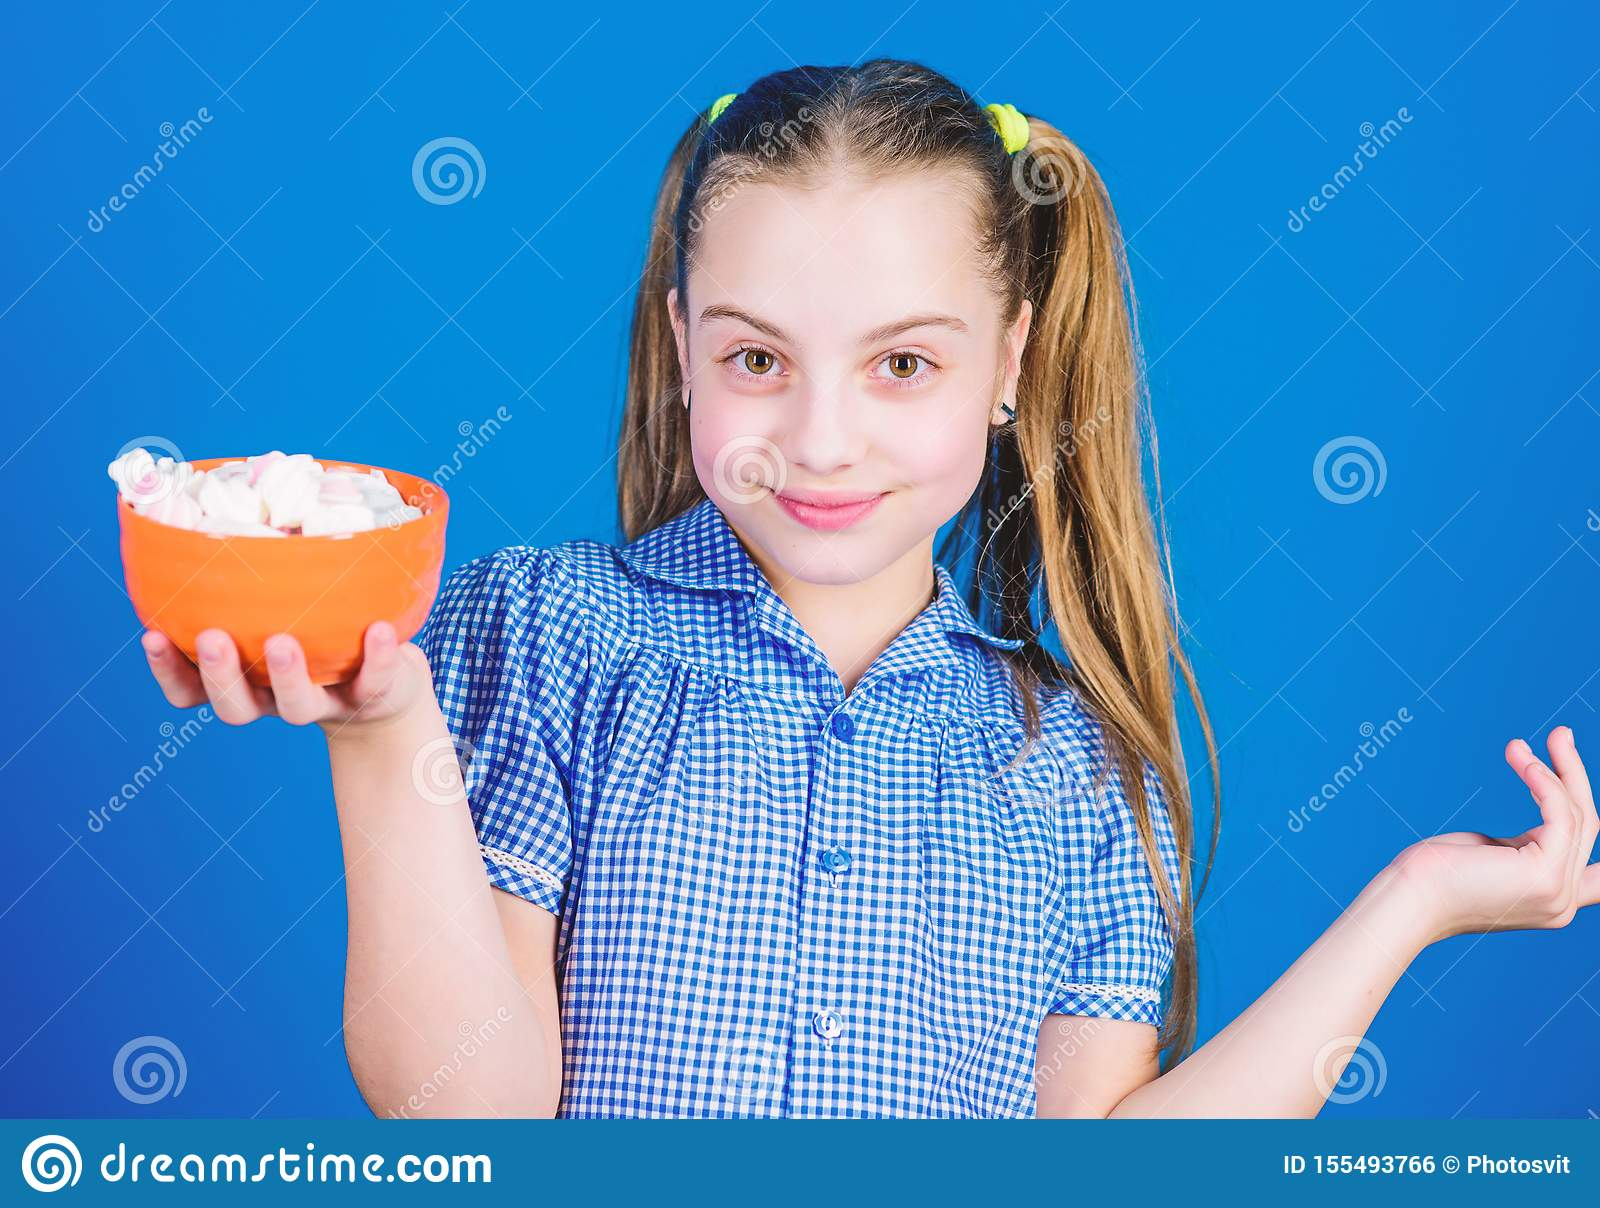 Confectionery. happy little child love sweets and treats. Small girl eat marshmallow. marshmallow. Candy shop. Healthy